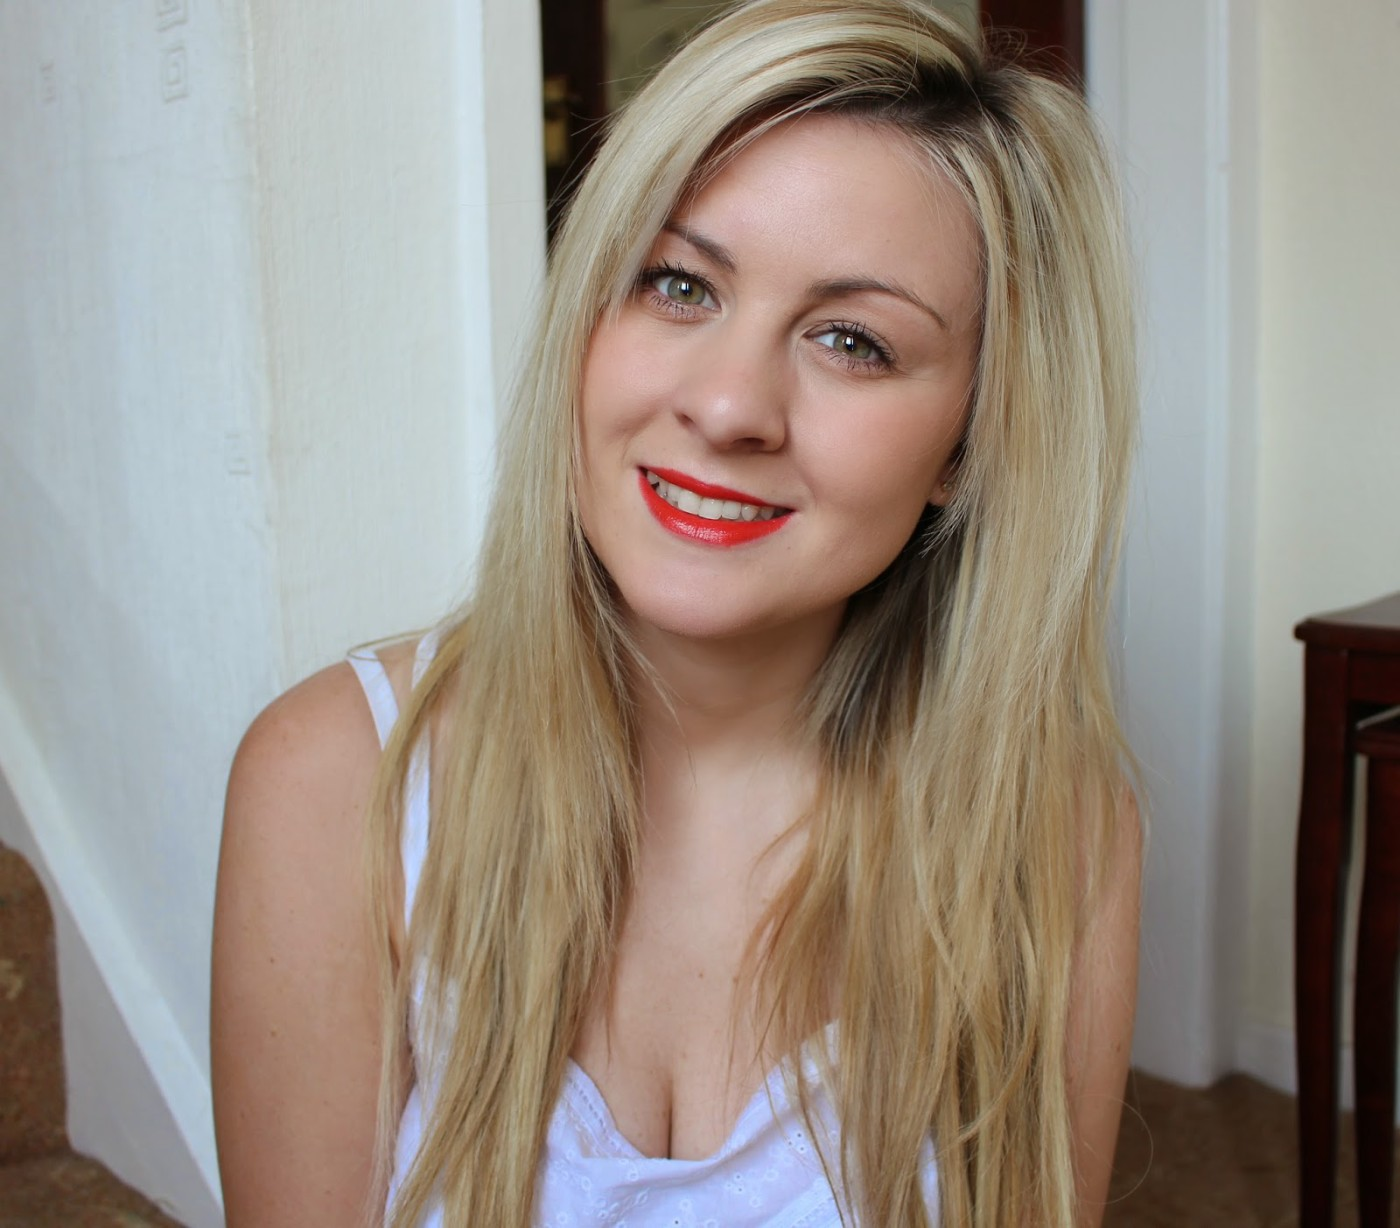 A UK, Manchester based Beauty, Fashion & Lifestyle Blog ♥ Expect to find make up and product reviews, fashion OOTD posts and anything hair related!, Rimmel, Rimmel moisture renew lipstick, rimmel in love with ginger lipstick,, mac lady danger dupe, through chelsea's eyes, rimmel in love with ginger being worn